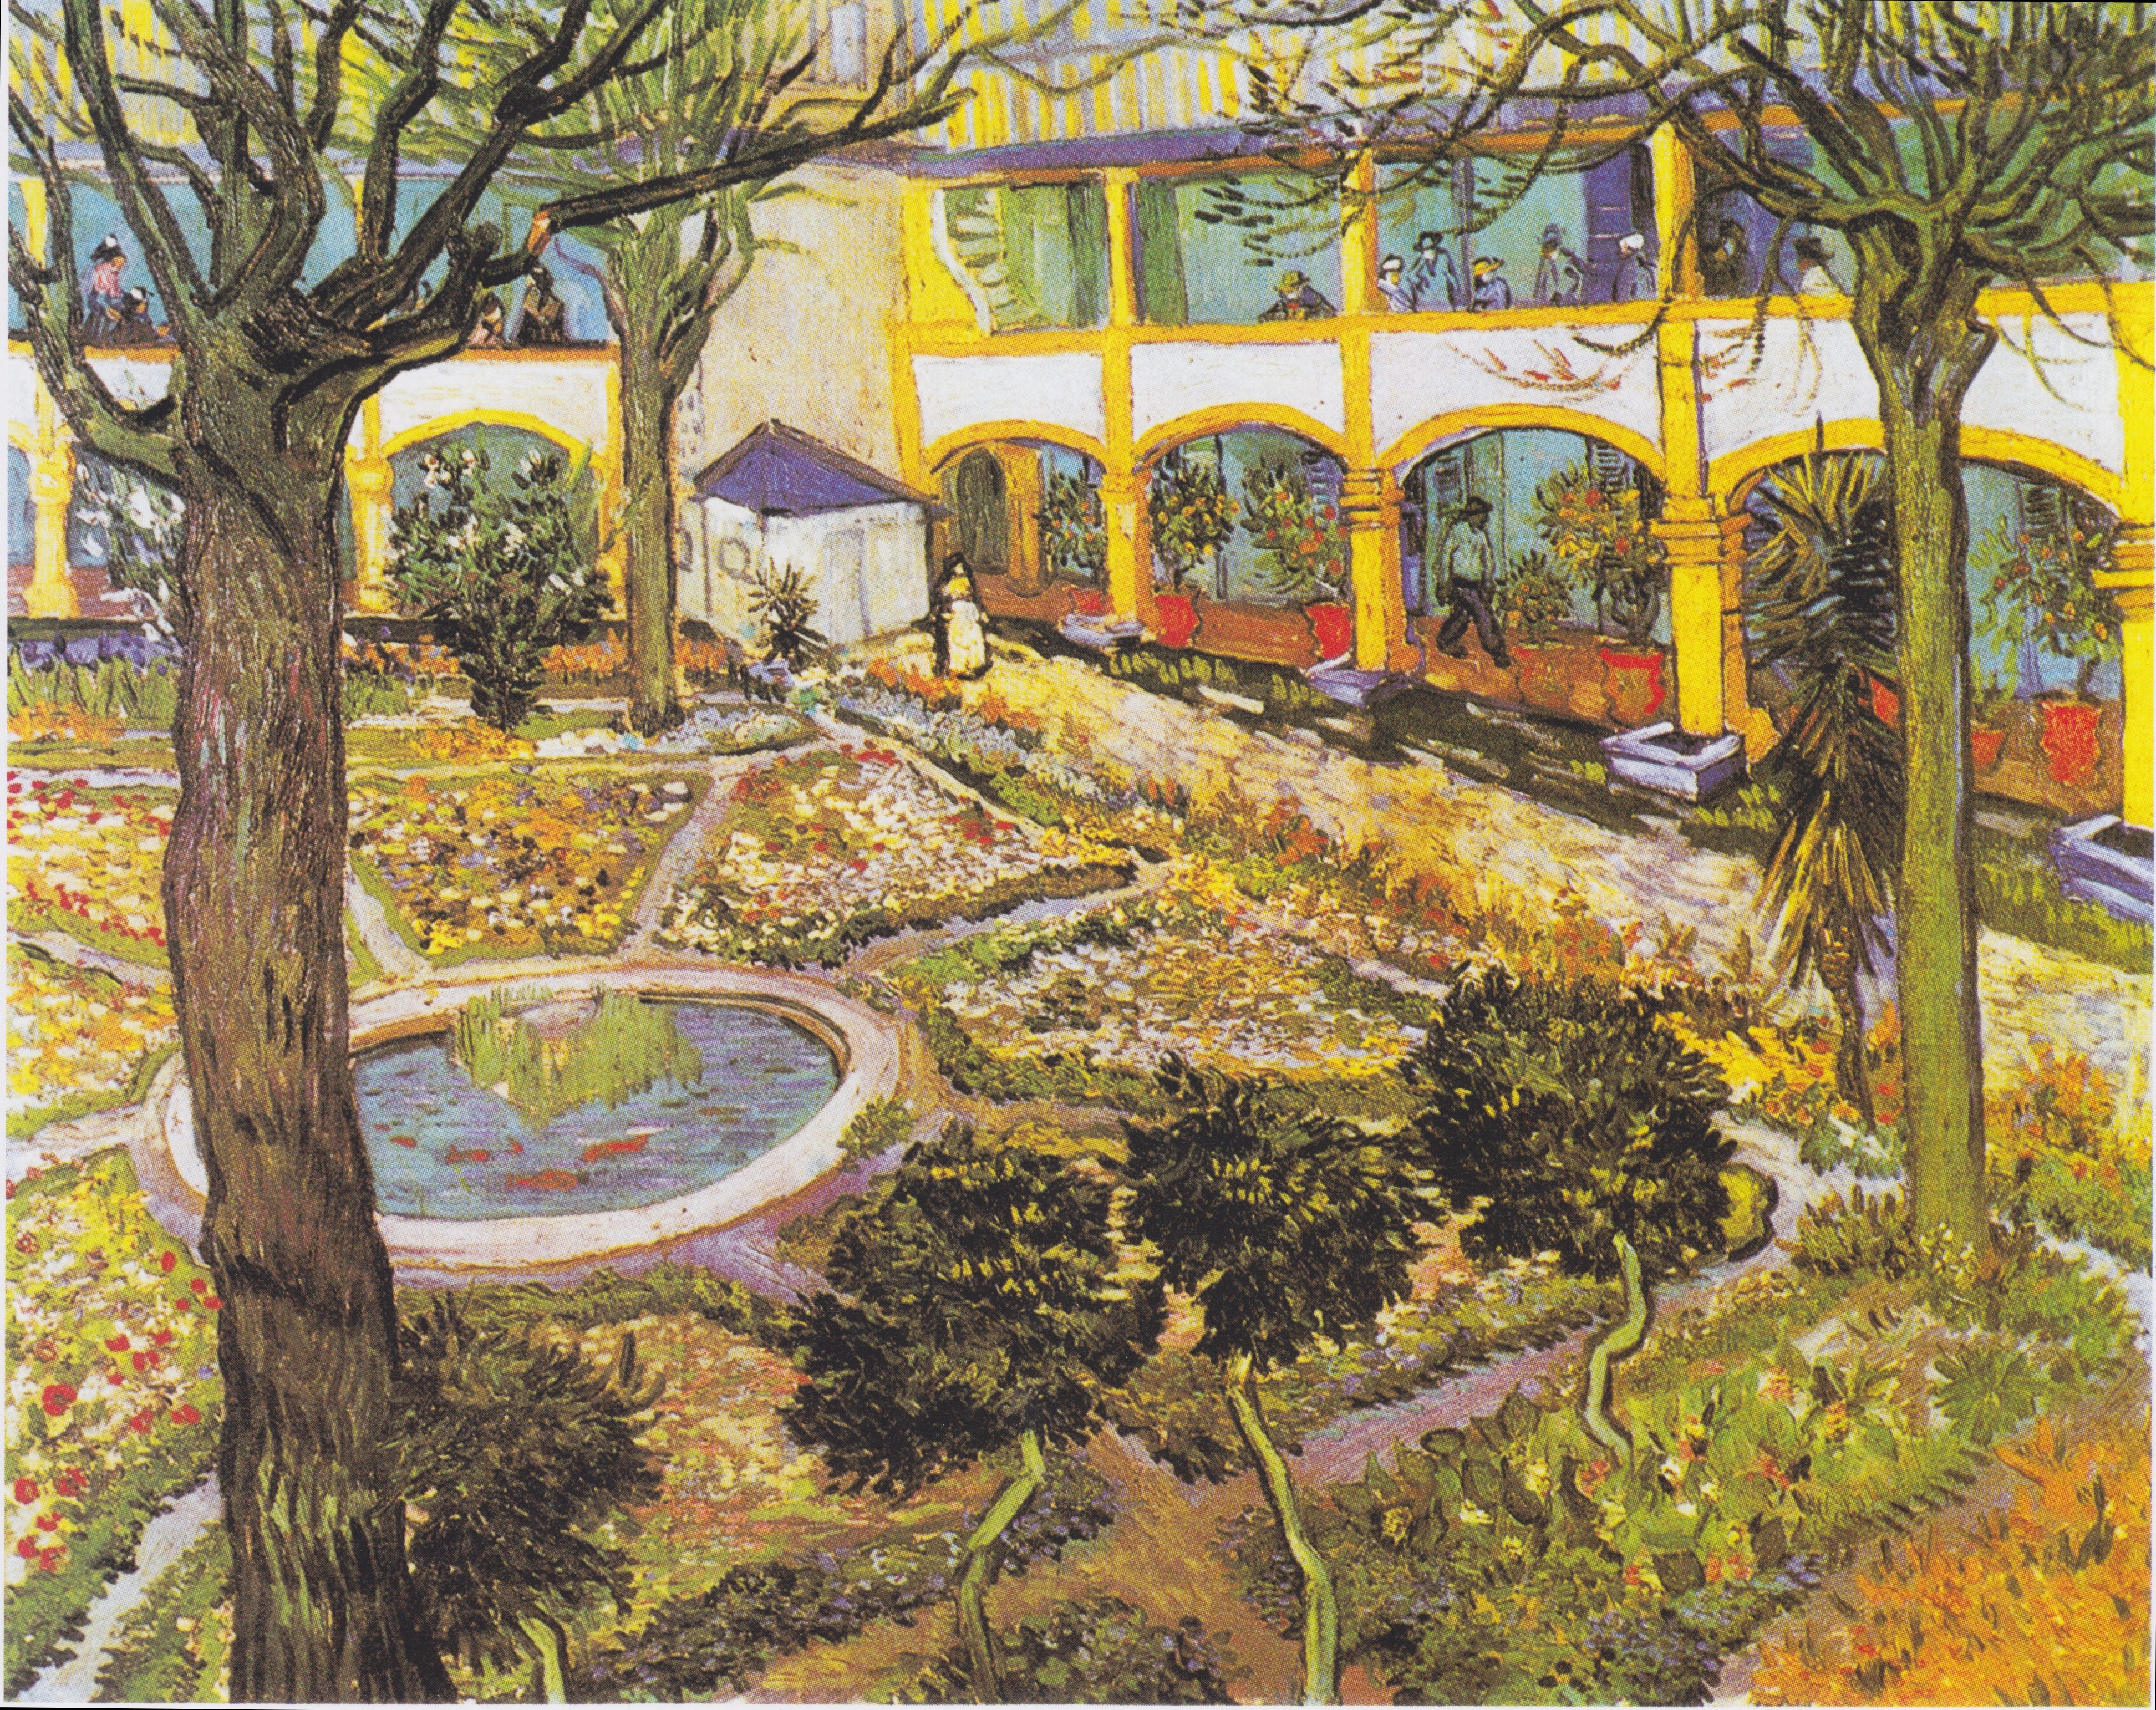 Garden of the Hospital in Arles courtesy of the Wikimedia Commons License